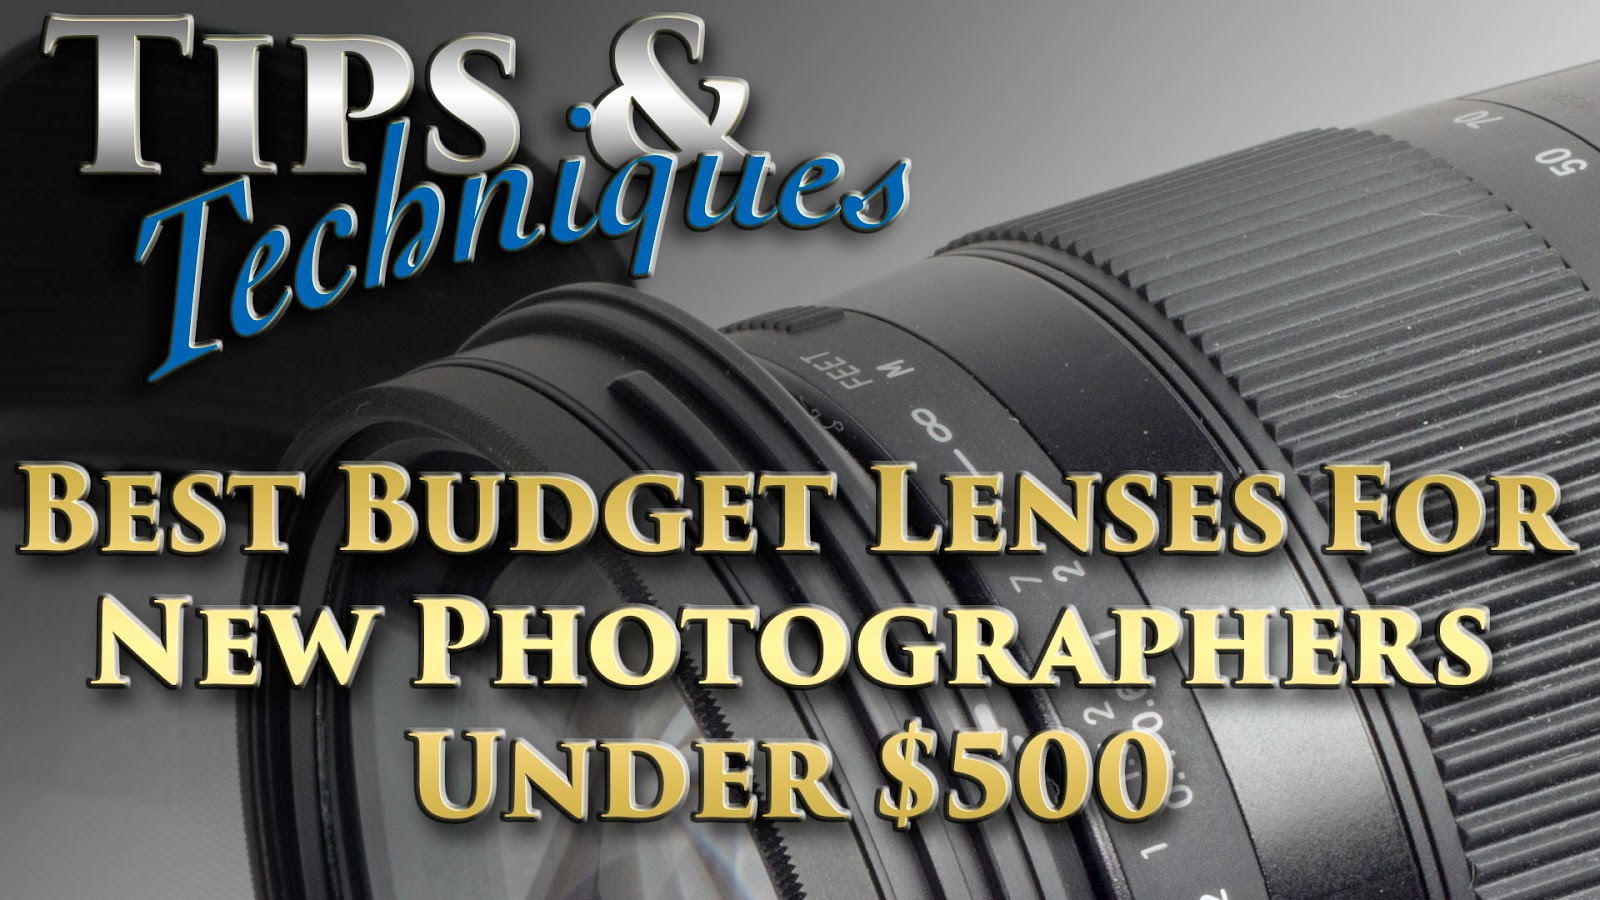 Best Budget Lenses For New Photographers Under $500